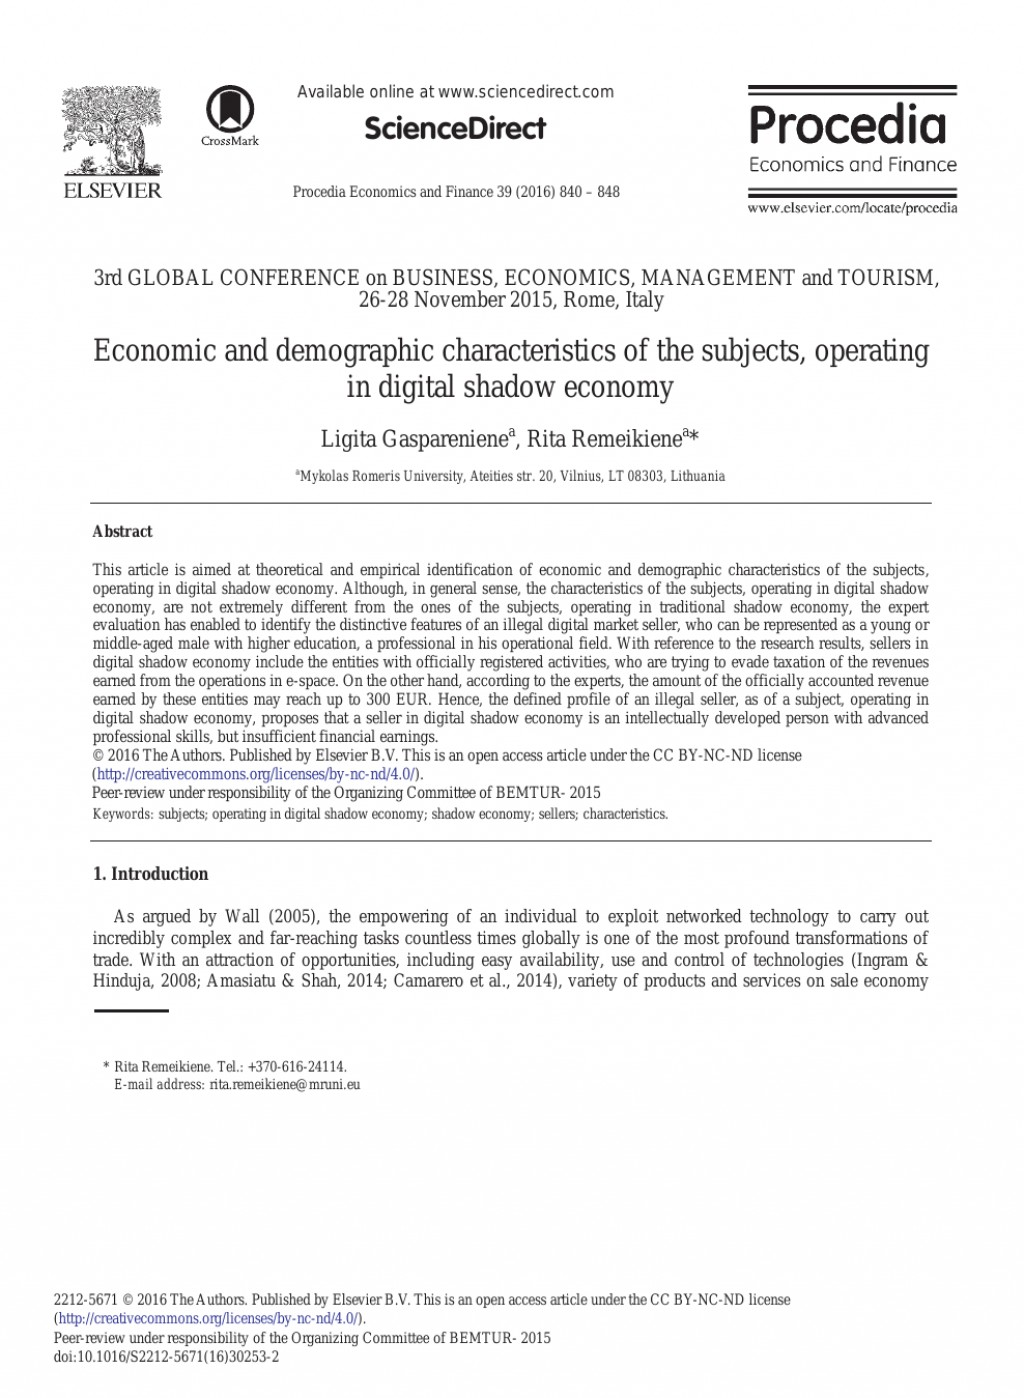 005 Research Paper Remarkable Economy Political Topics Cash To Cashless Gig Large